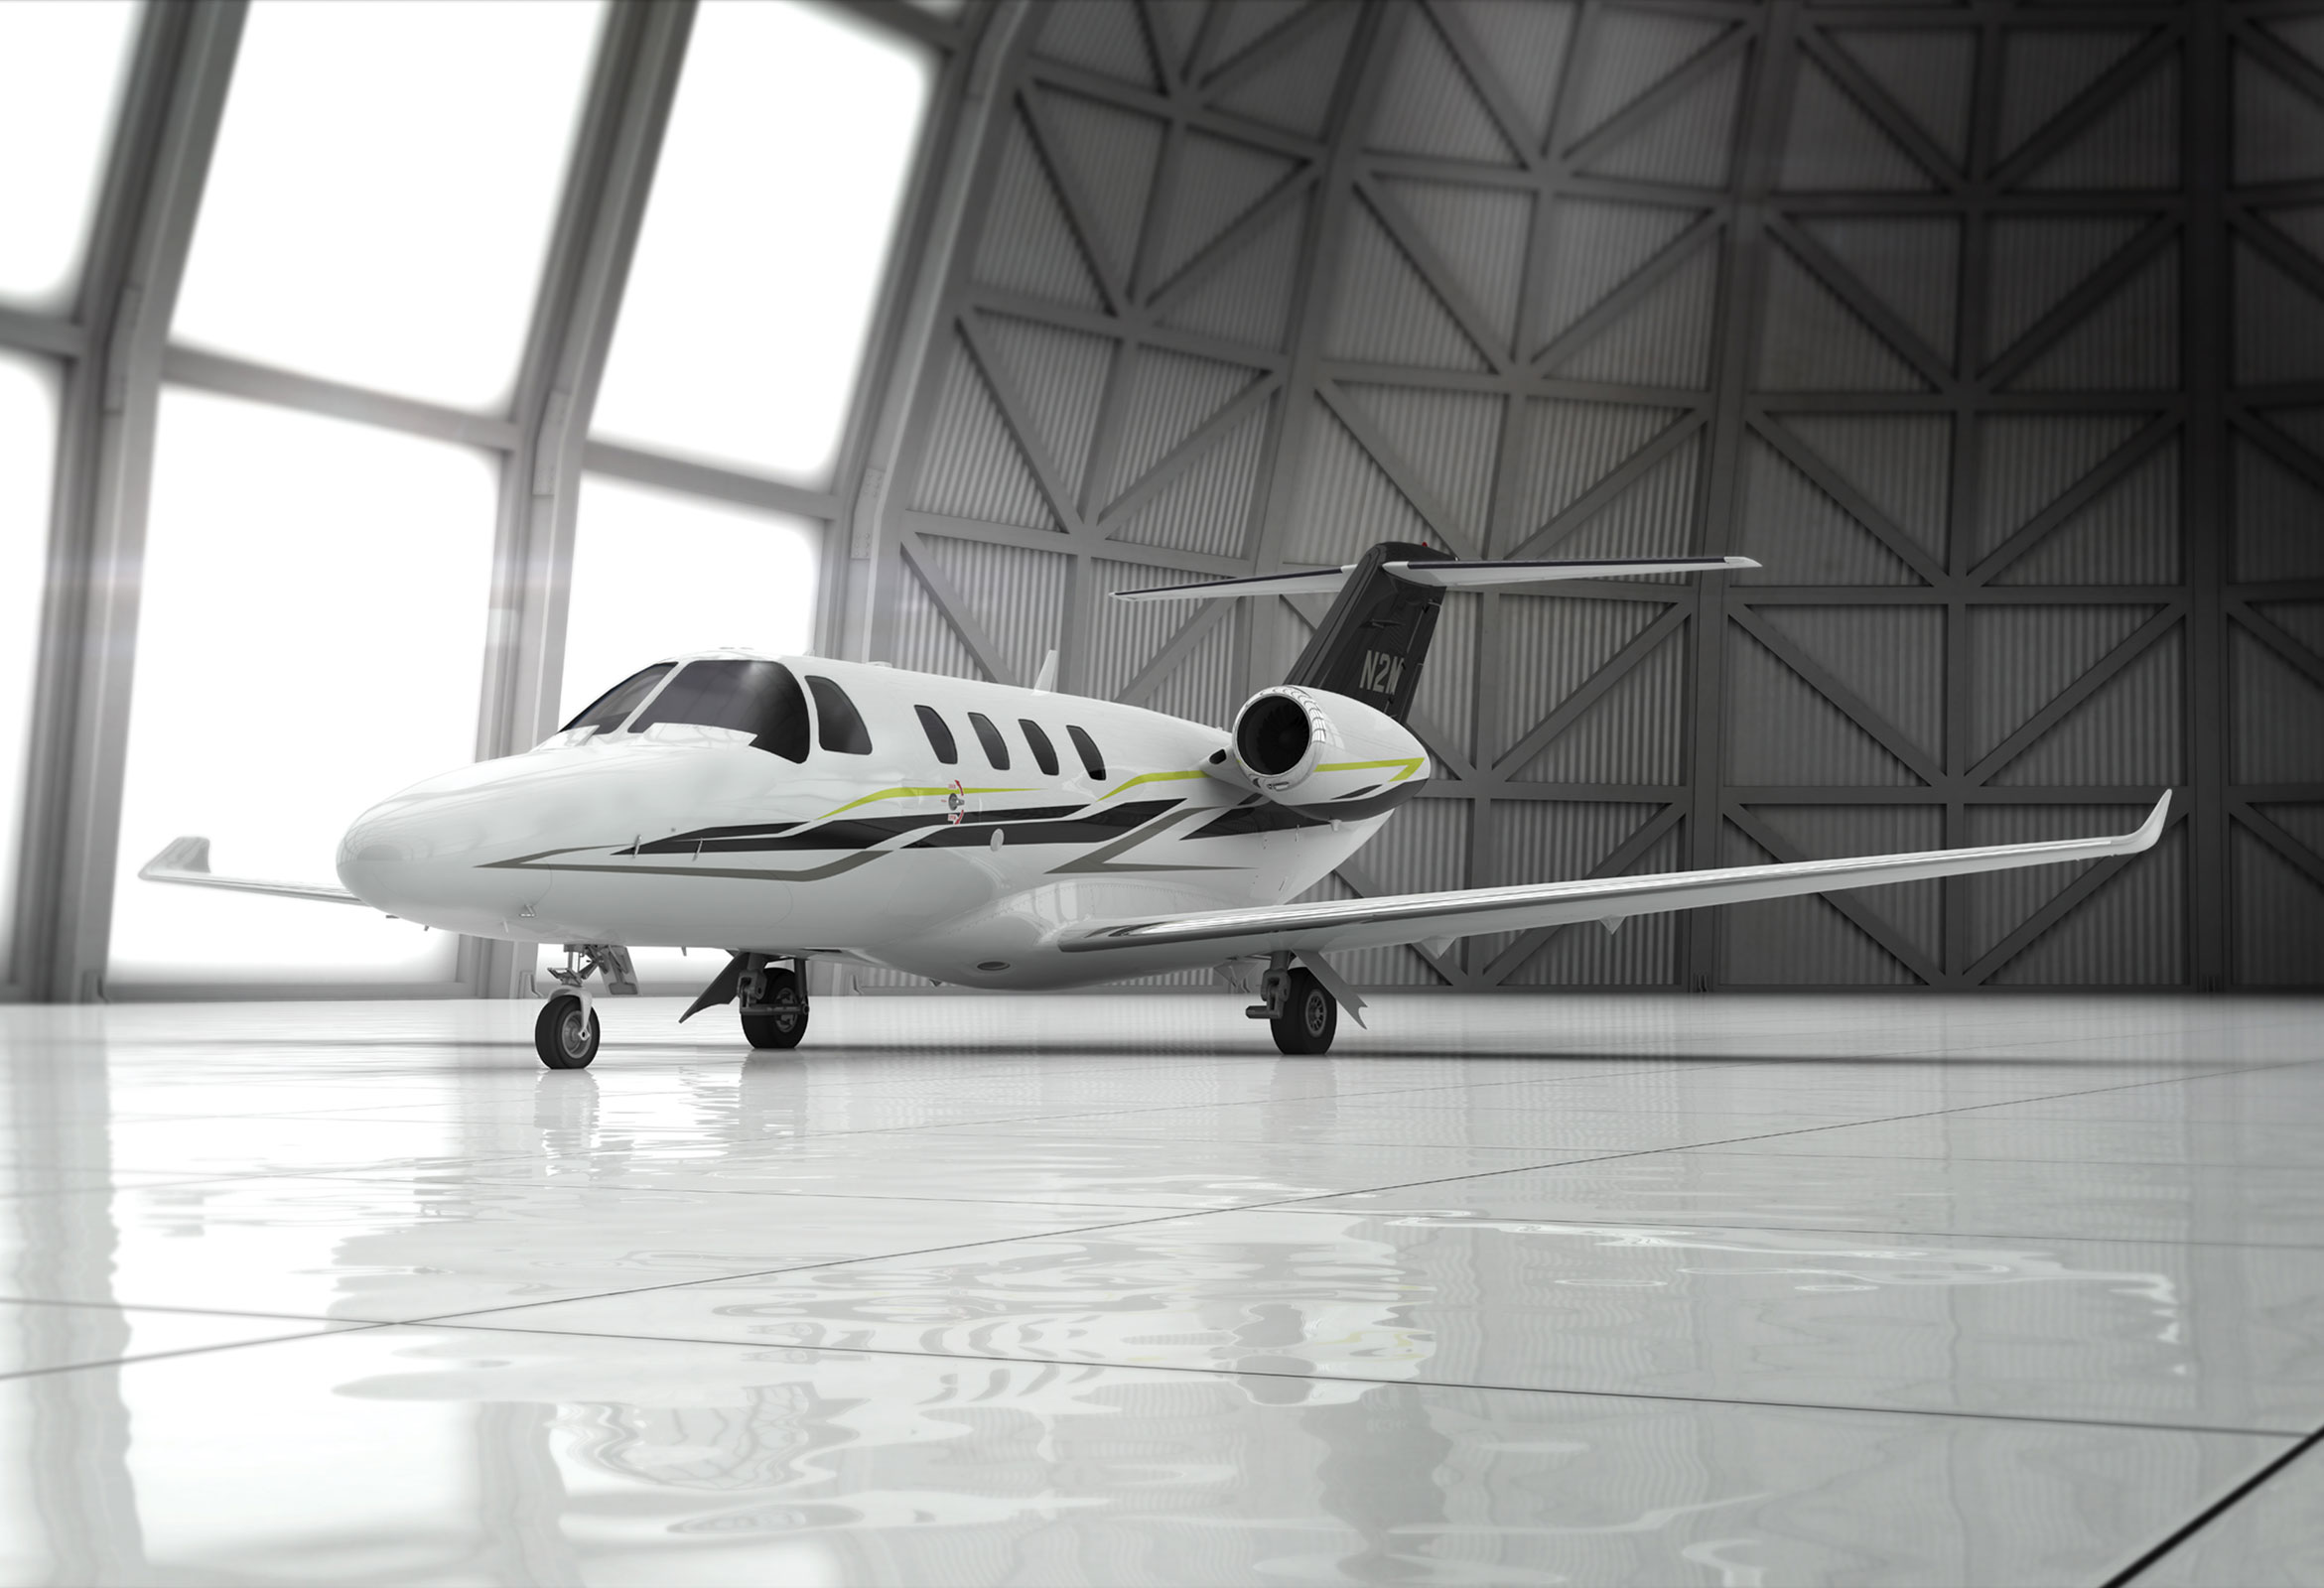 Cessna M2 Vs Mustang Related Keywords Suggestions Cessna M2 Vs